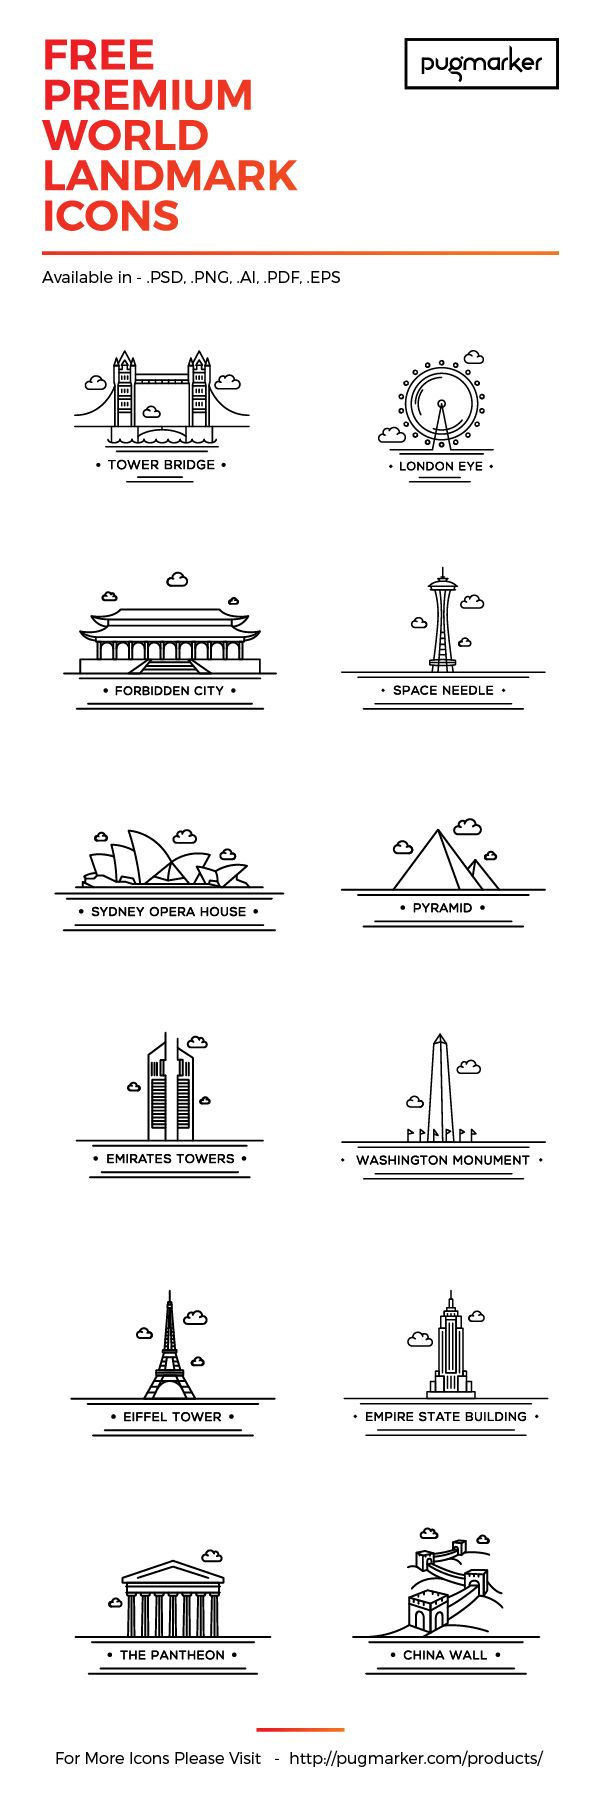 Today we have for you a nice pack of 12 line icons representing some of the most famous landmarks of the world. Big thanks to PugMarker for providing us with this awesome freebie.